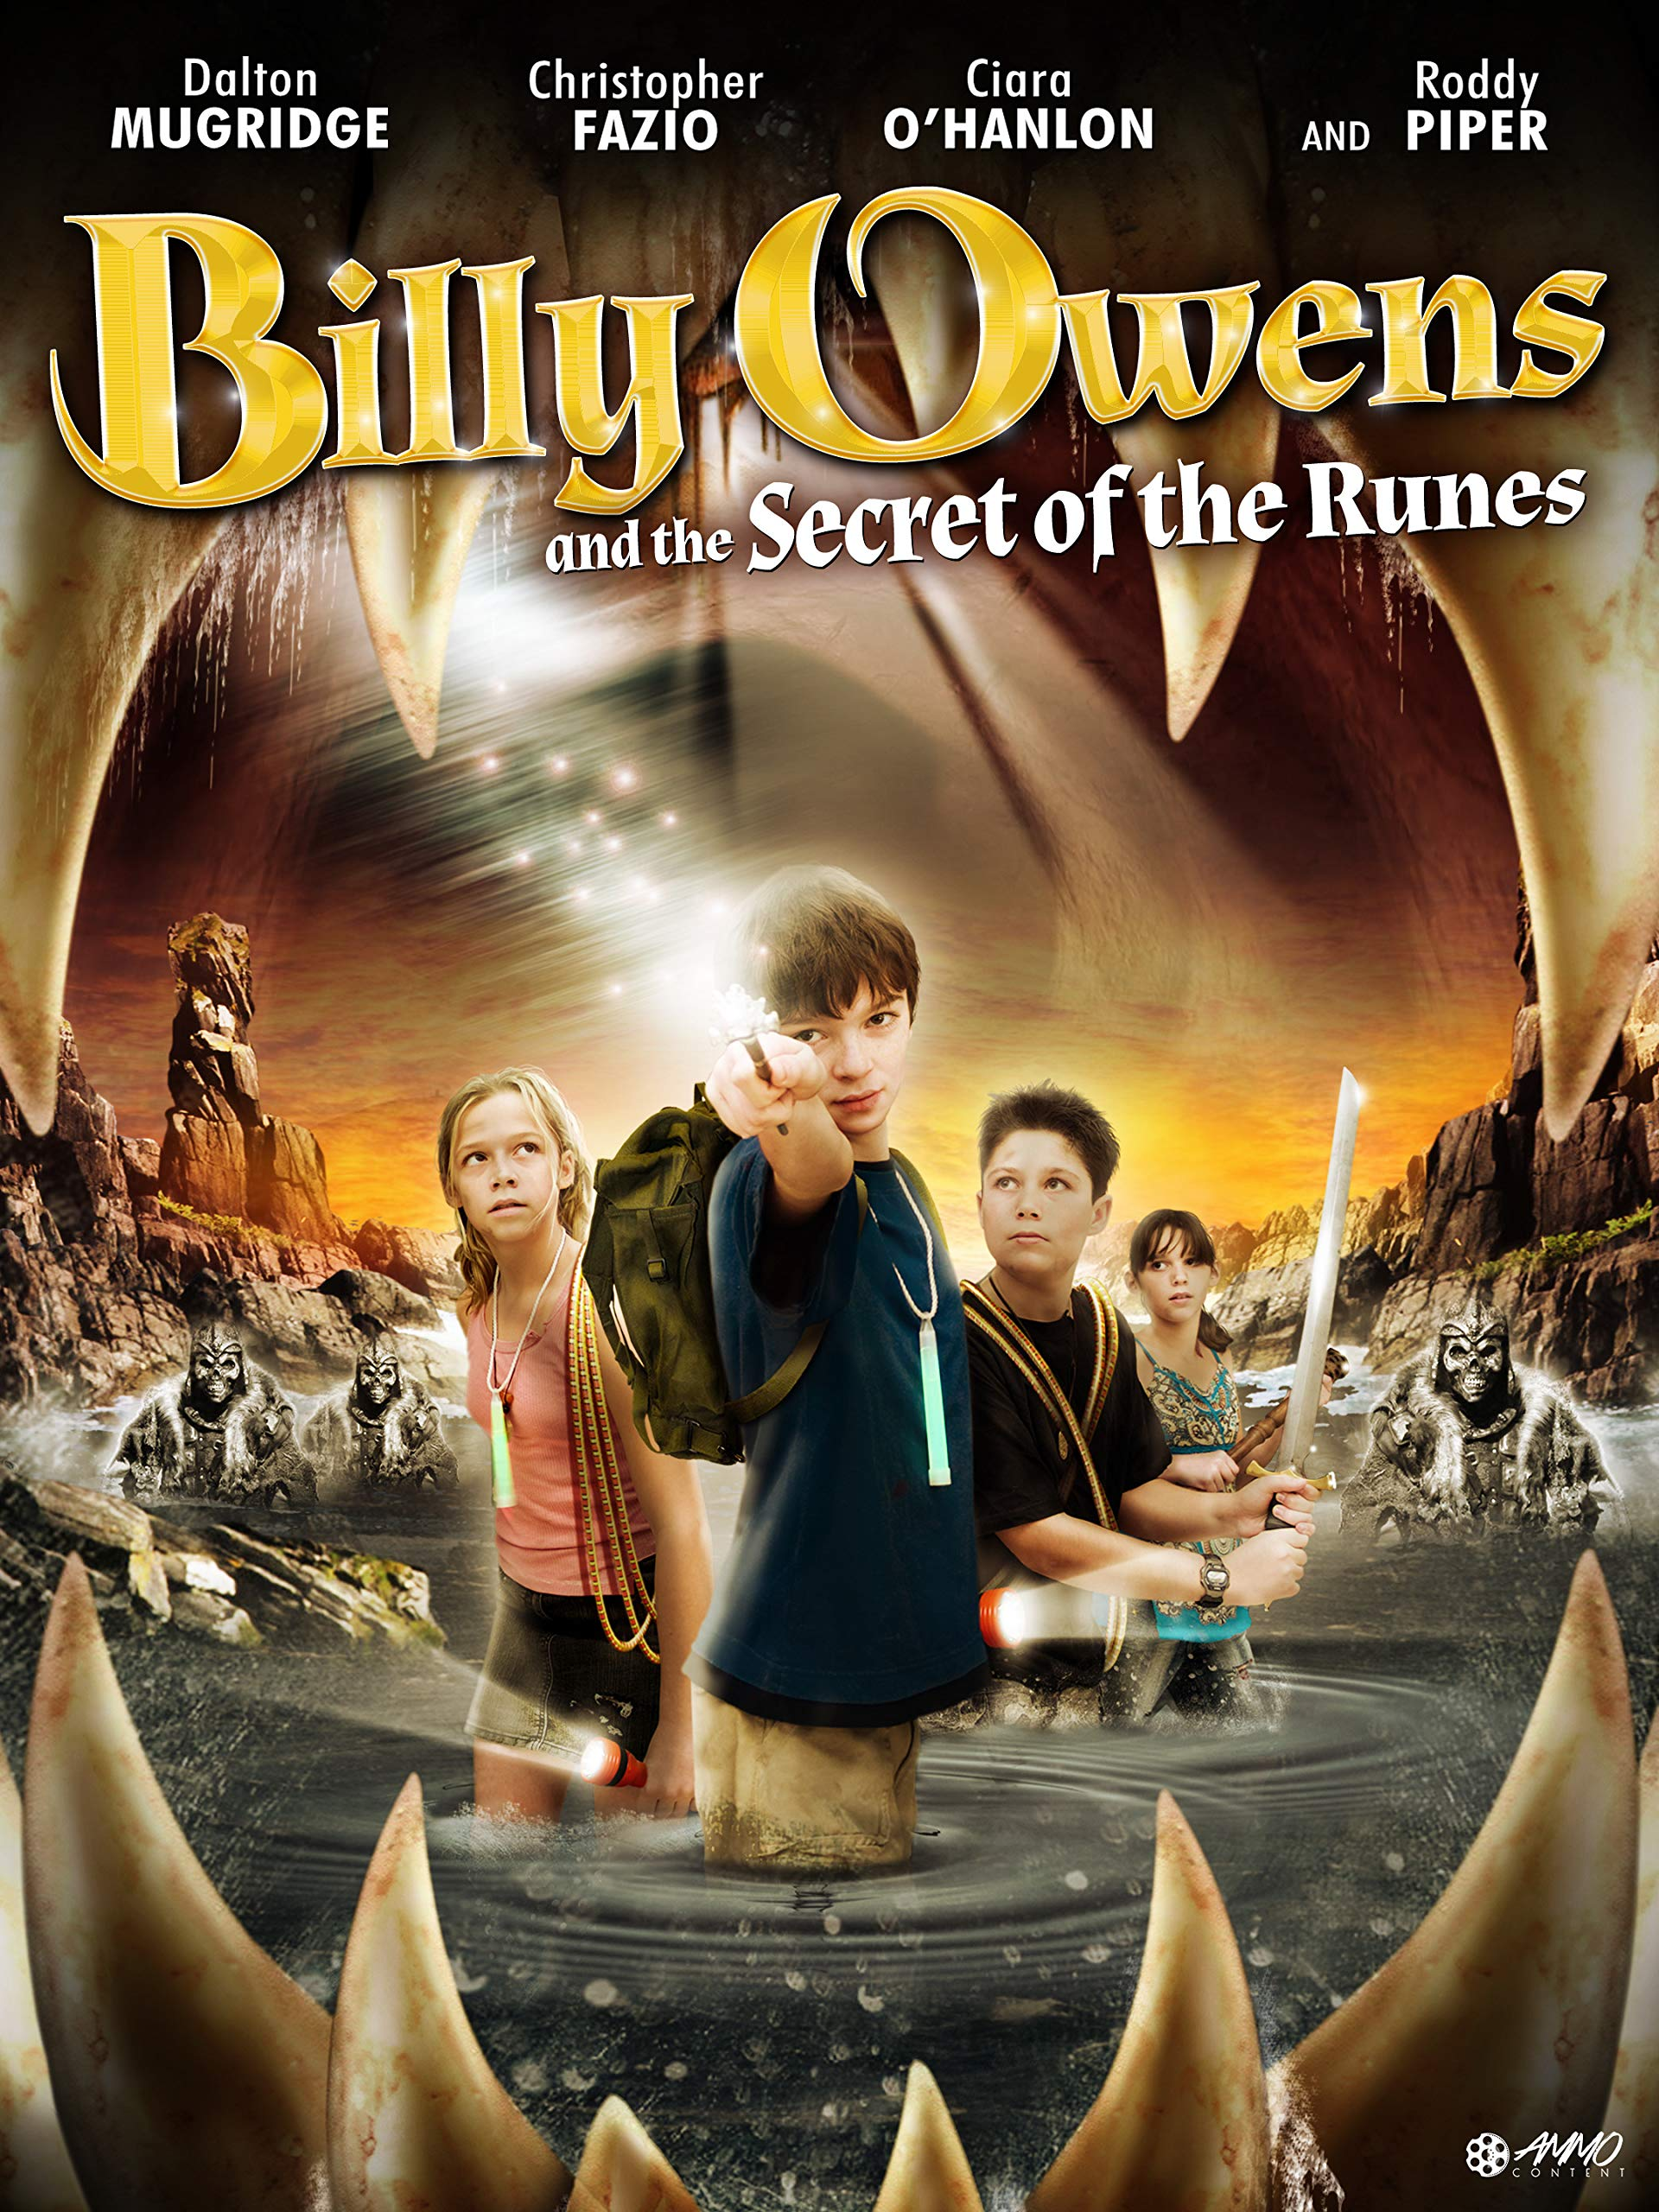 Billy Owens and the Secret of the Runes on Amazon Prime Video UK